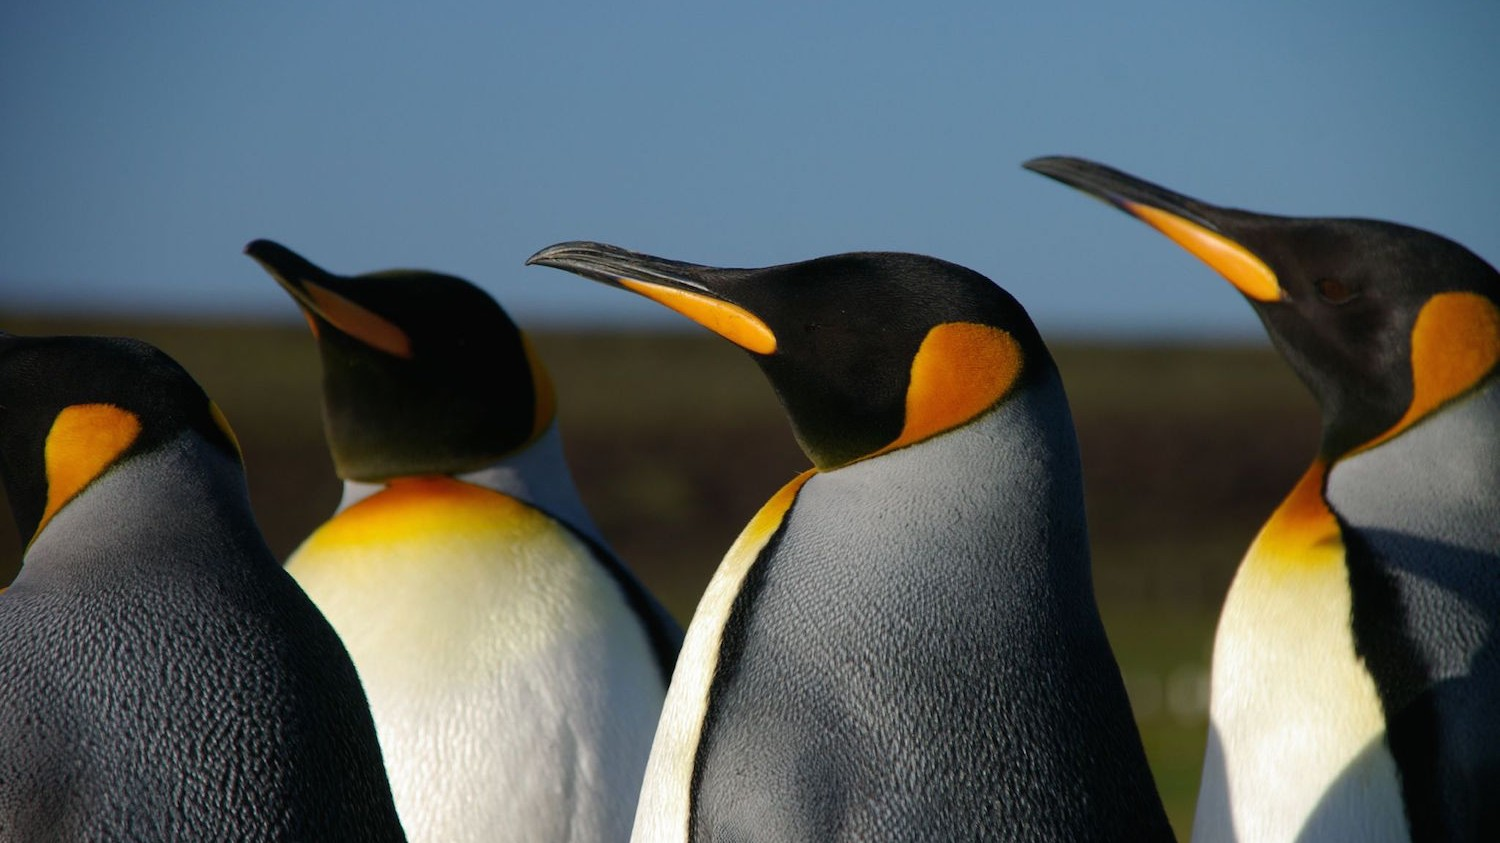 Study Shows King Penguins Choose Mates Based on Their Colorful Beaks